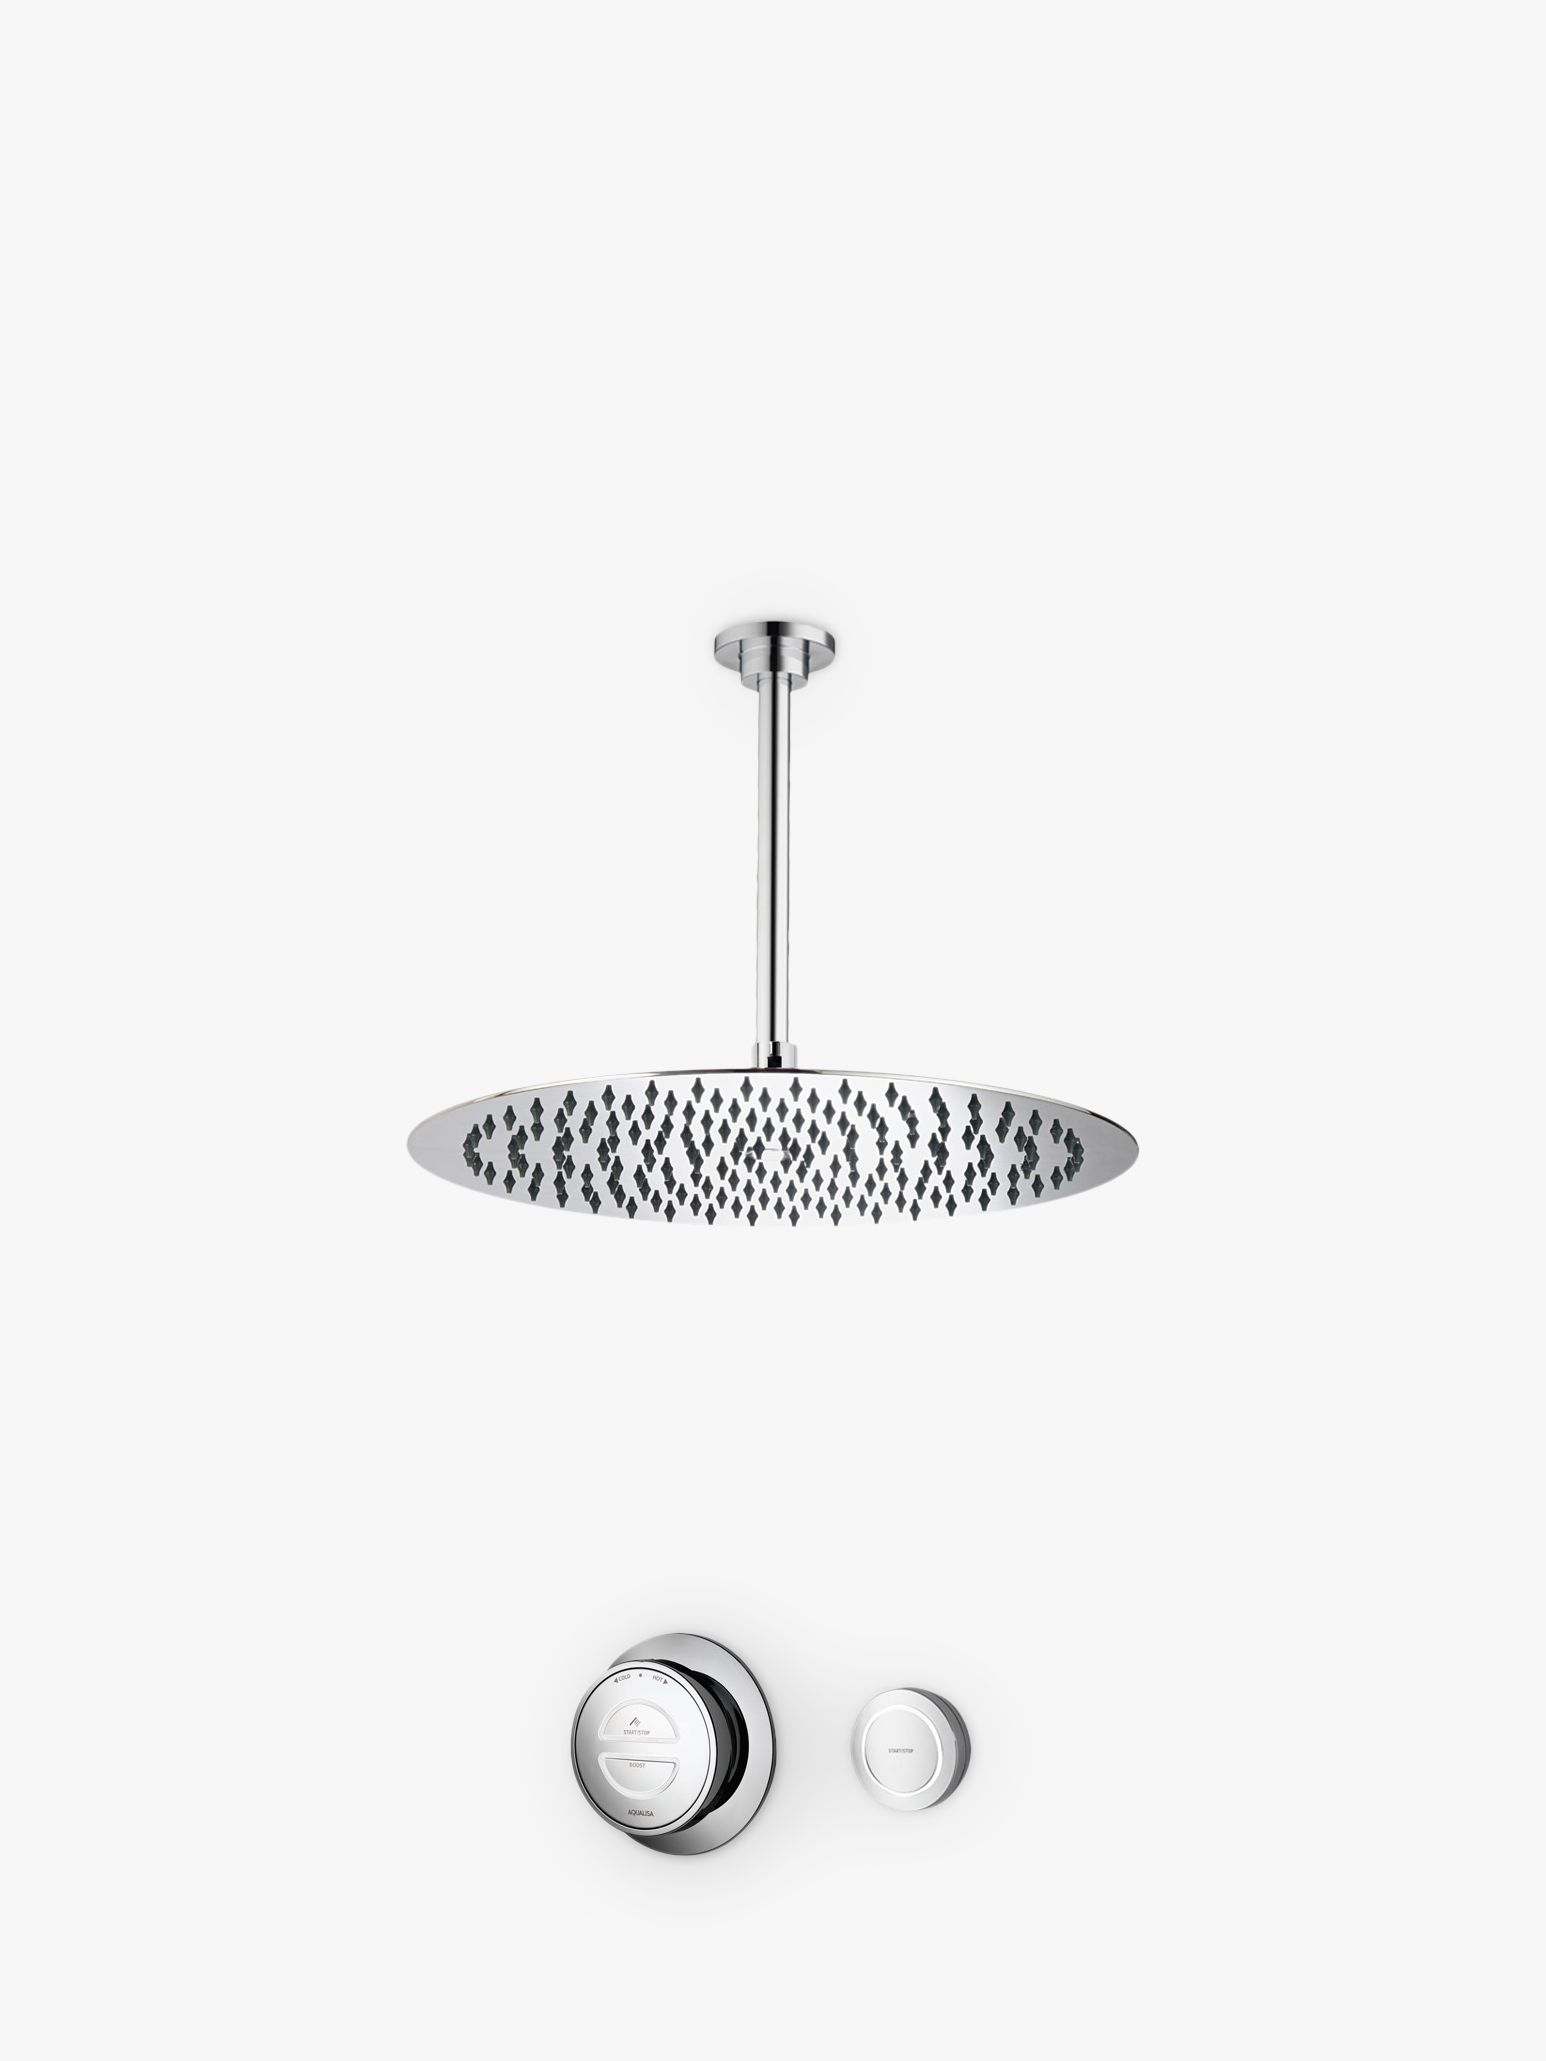 Aqualisa Aqualisa Rise Digital Concealed HP/Combi Shower with Ceiling Fixed Head, Dia.25cm